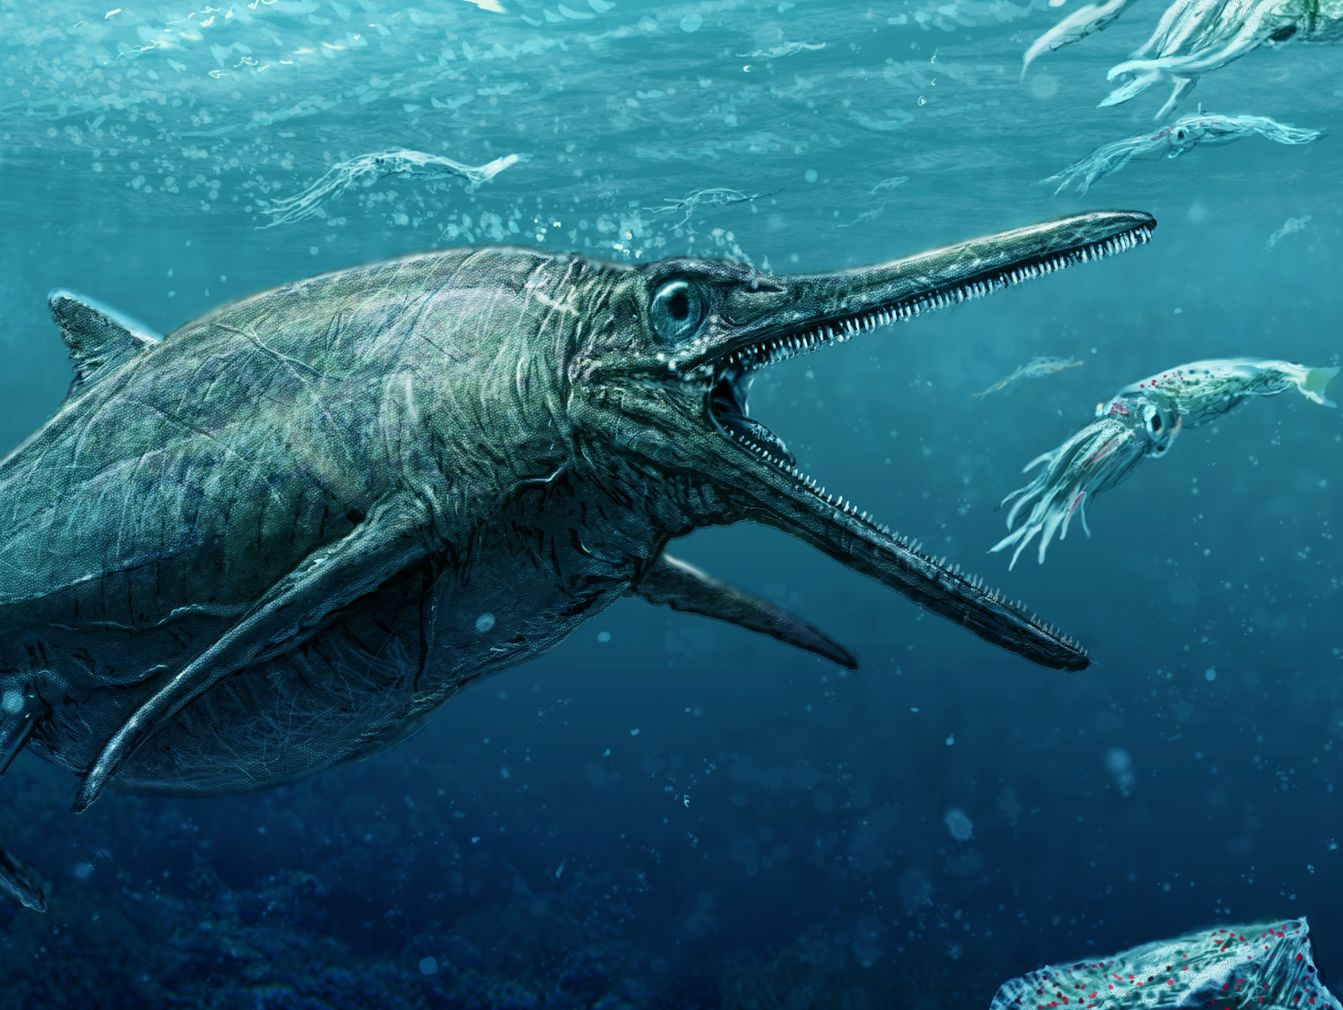 An artist's rendering of what the Storr Lochs monster looked like in the Jurassic period